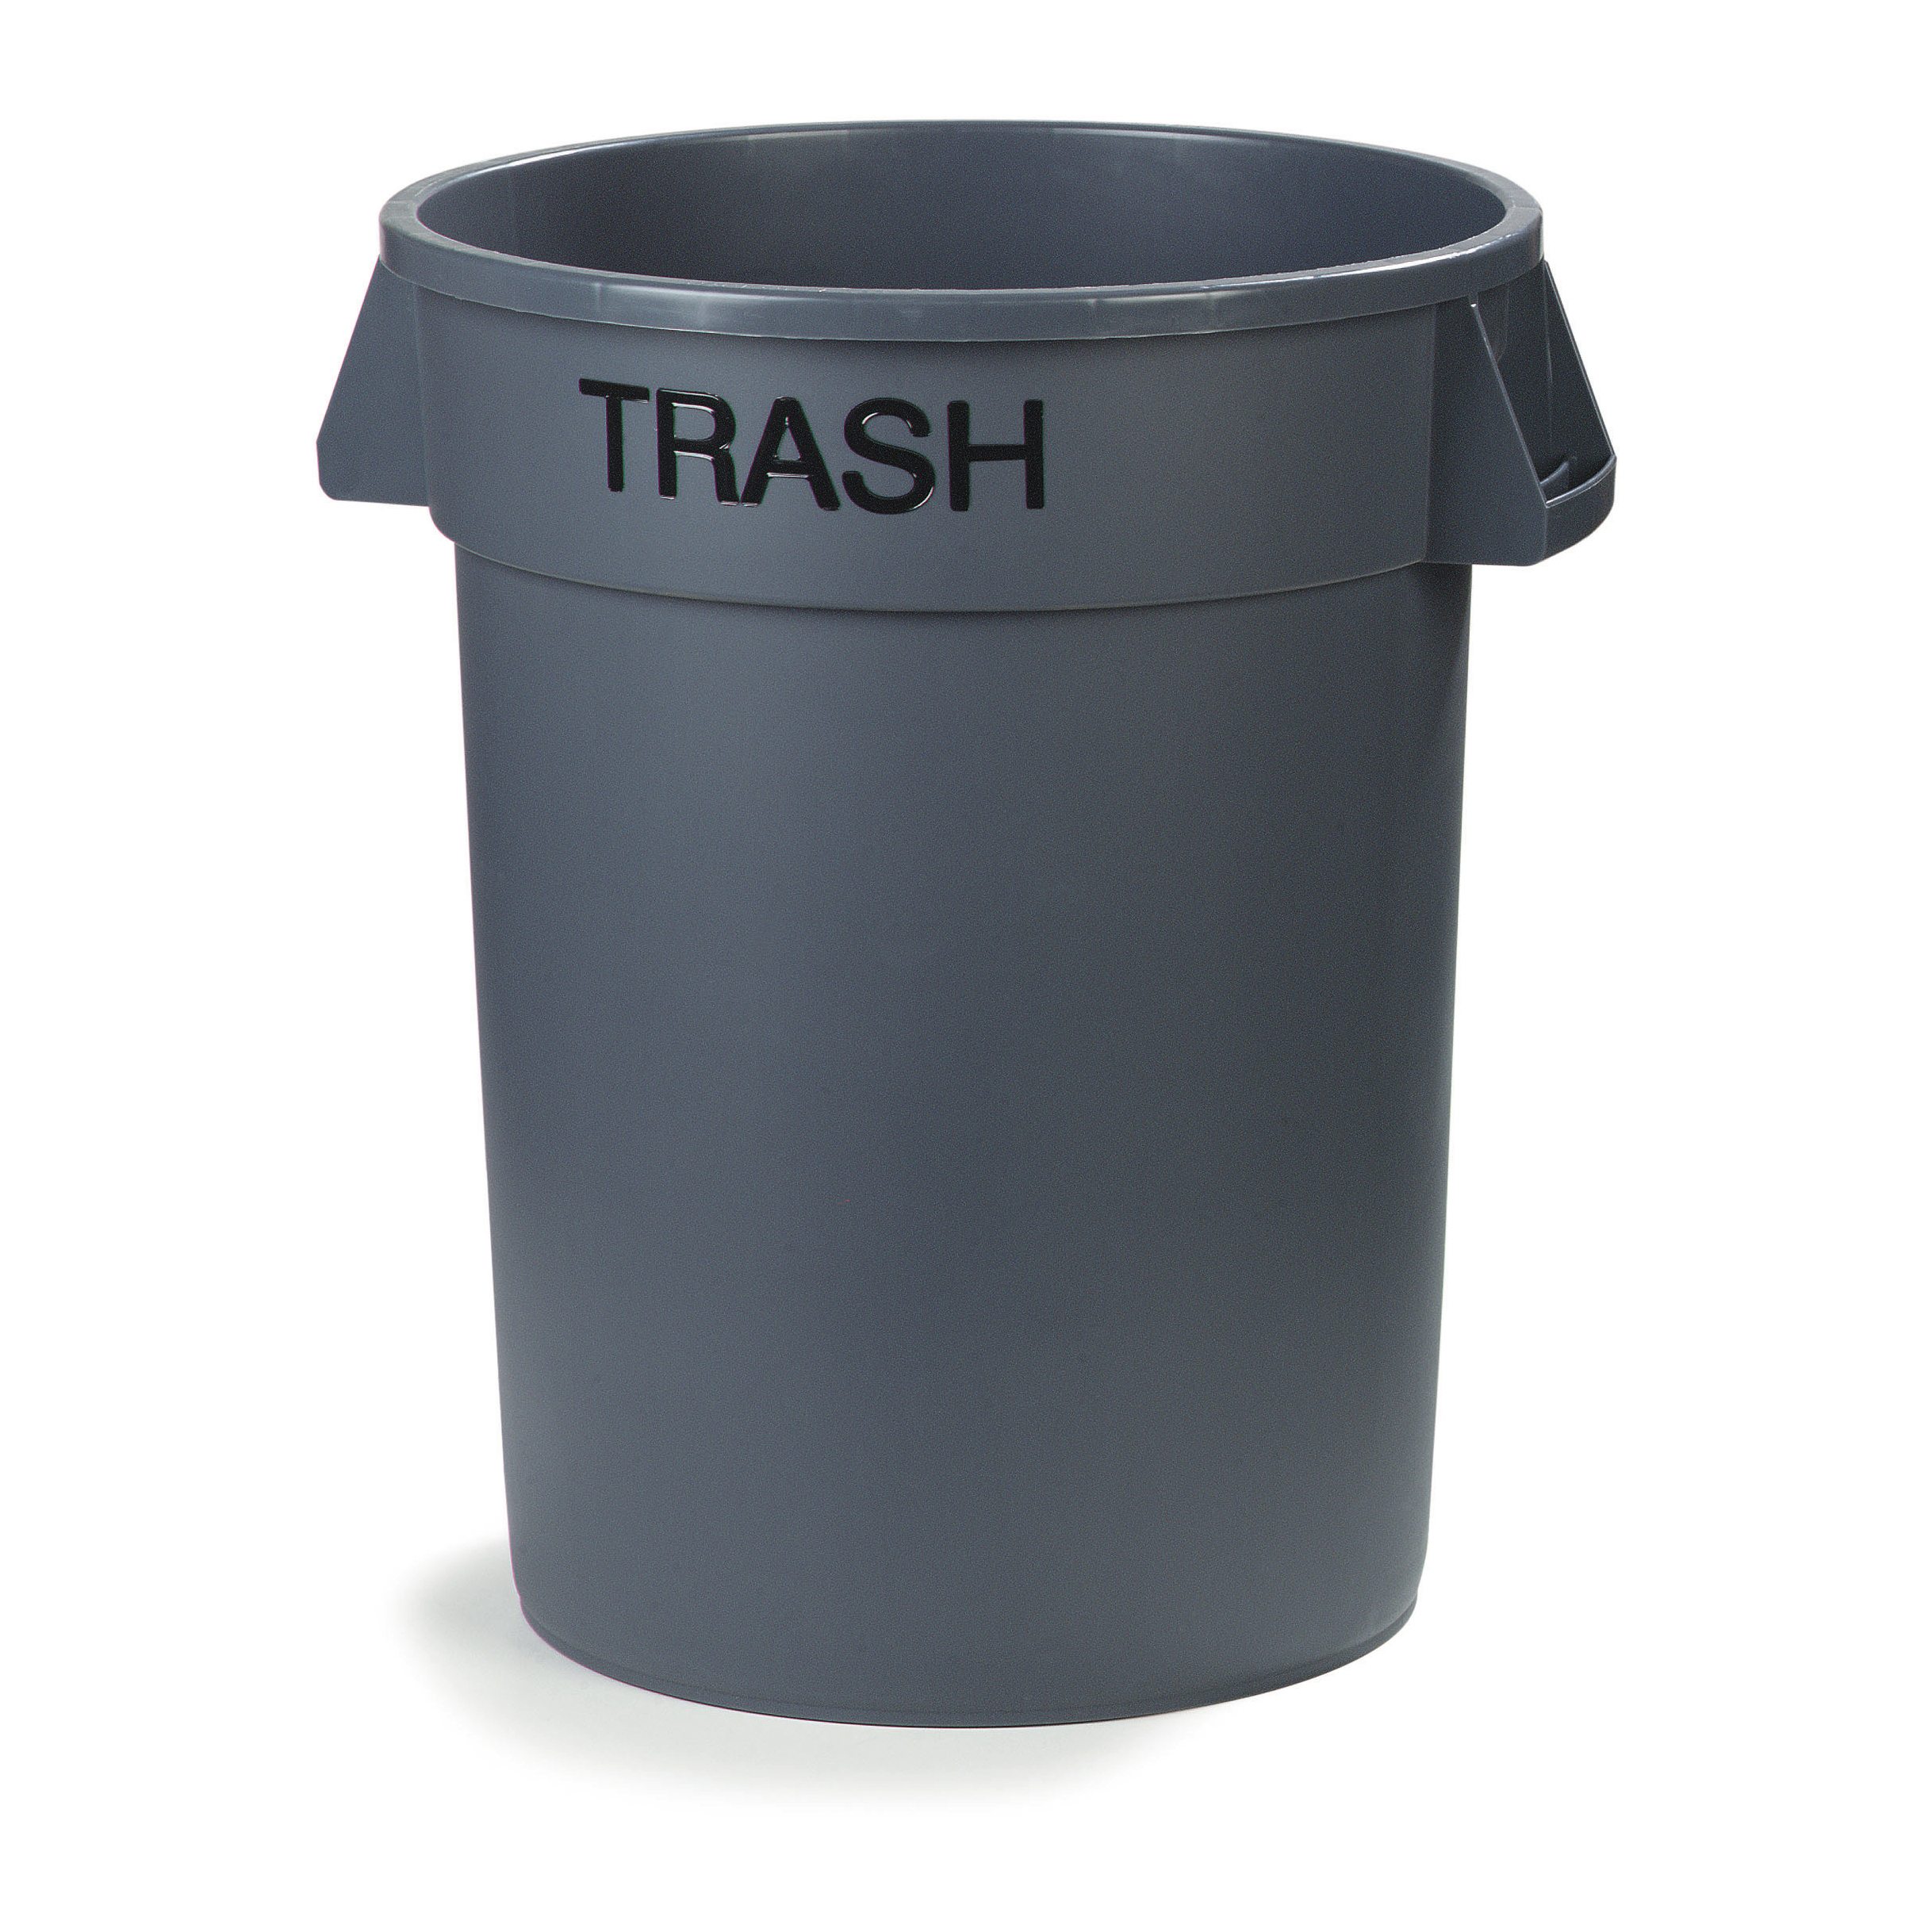 Carlisle 341044TRON23 trash can / container, commercial